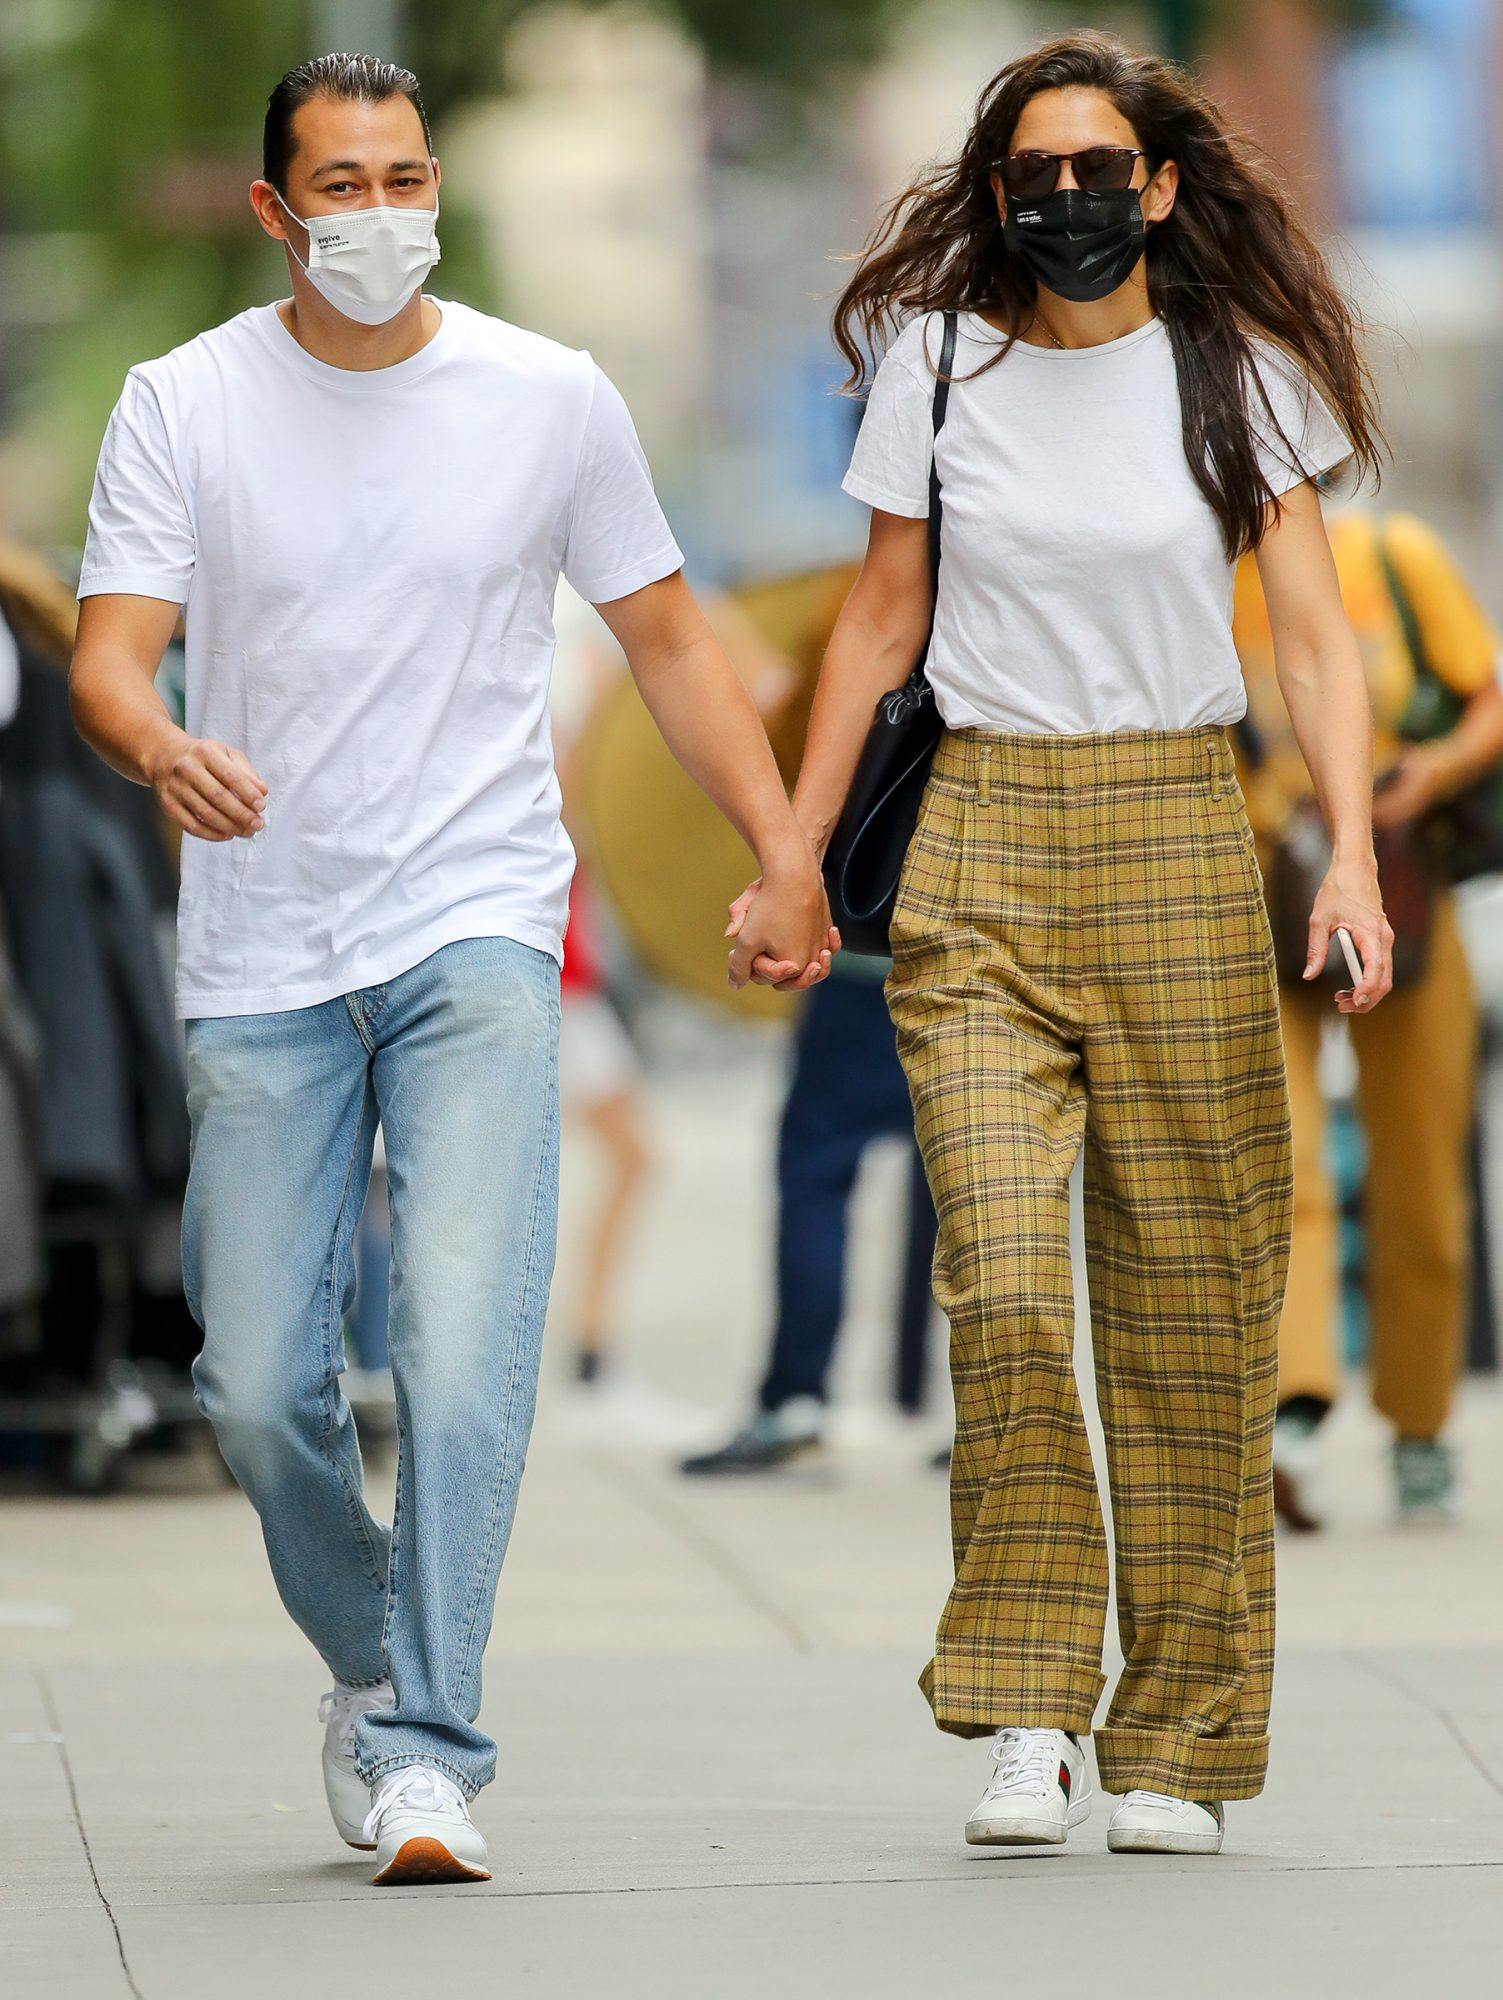 Katie Holmes And Emilio Vitolo Jr. Look Radiant While They Taking A Stroll In SoHo